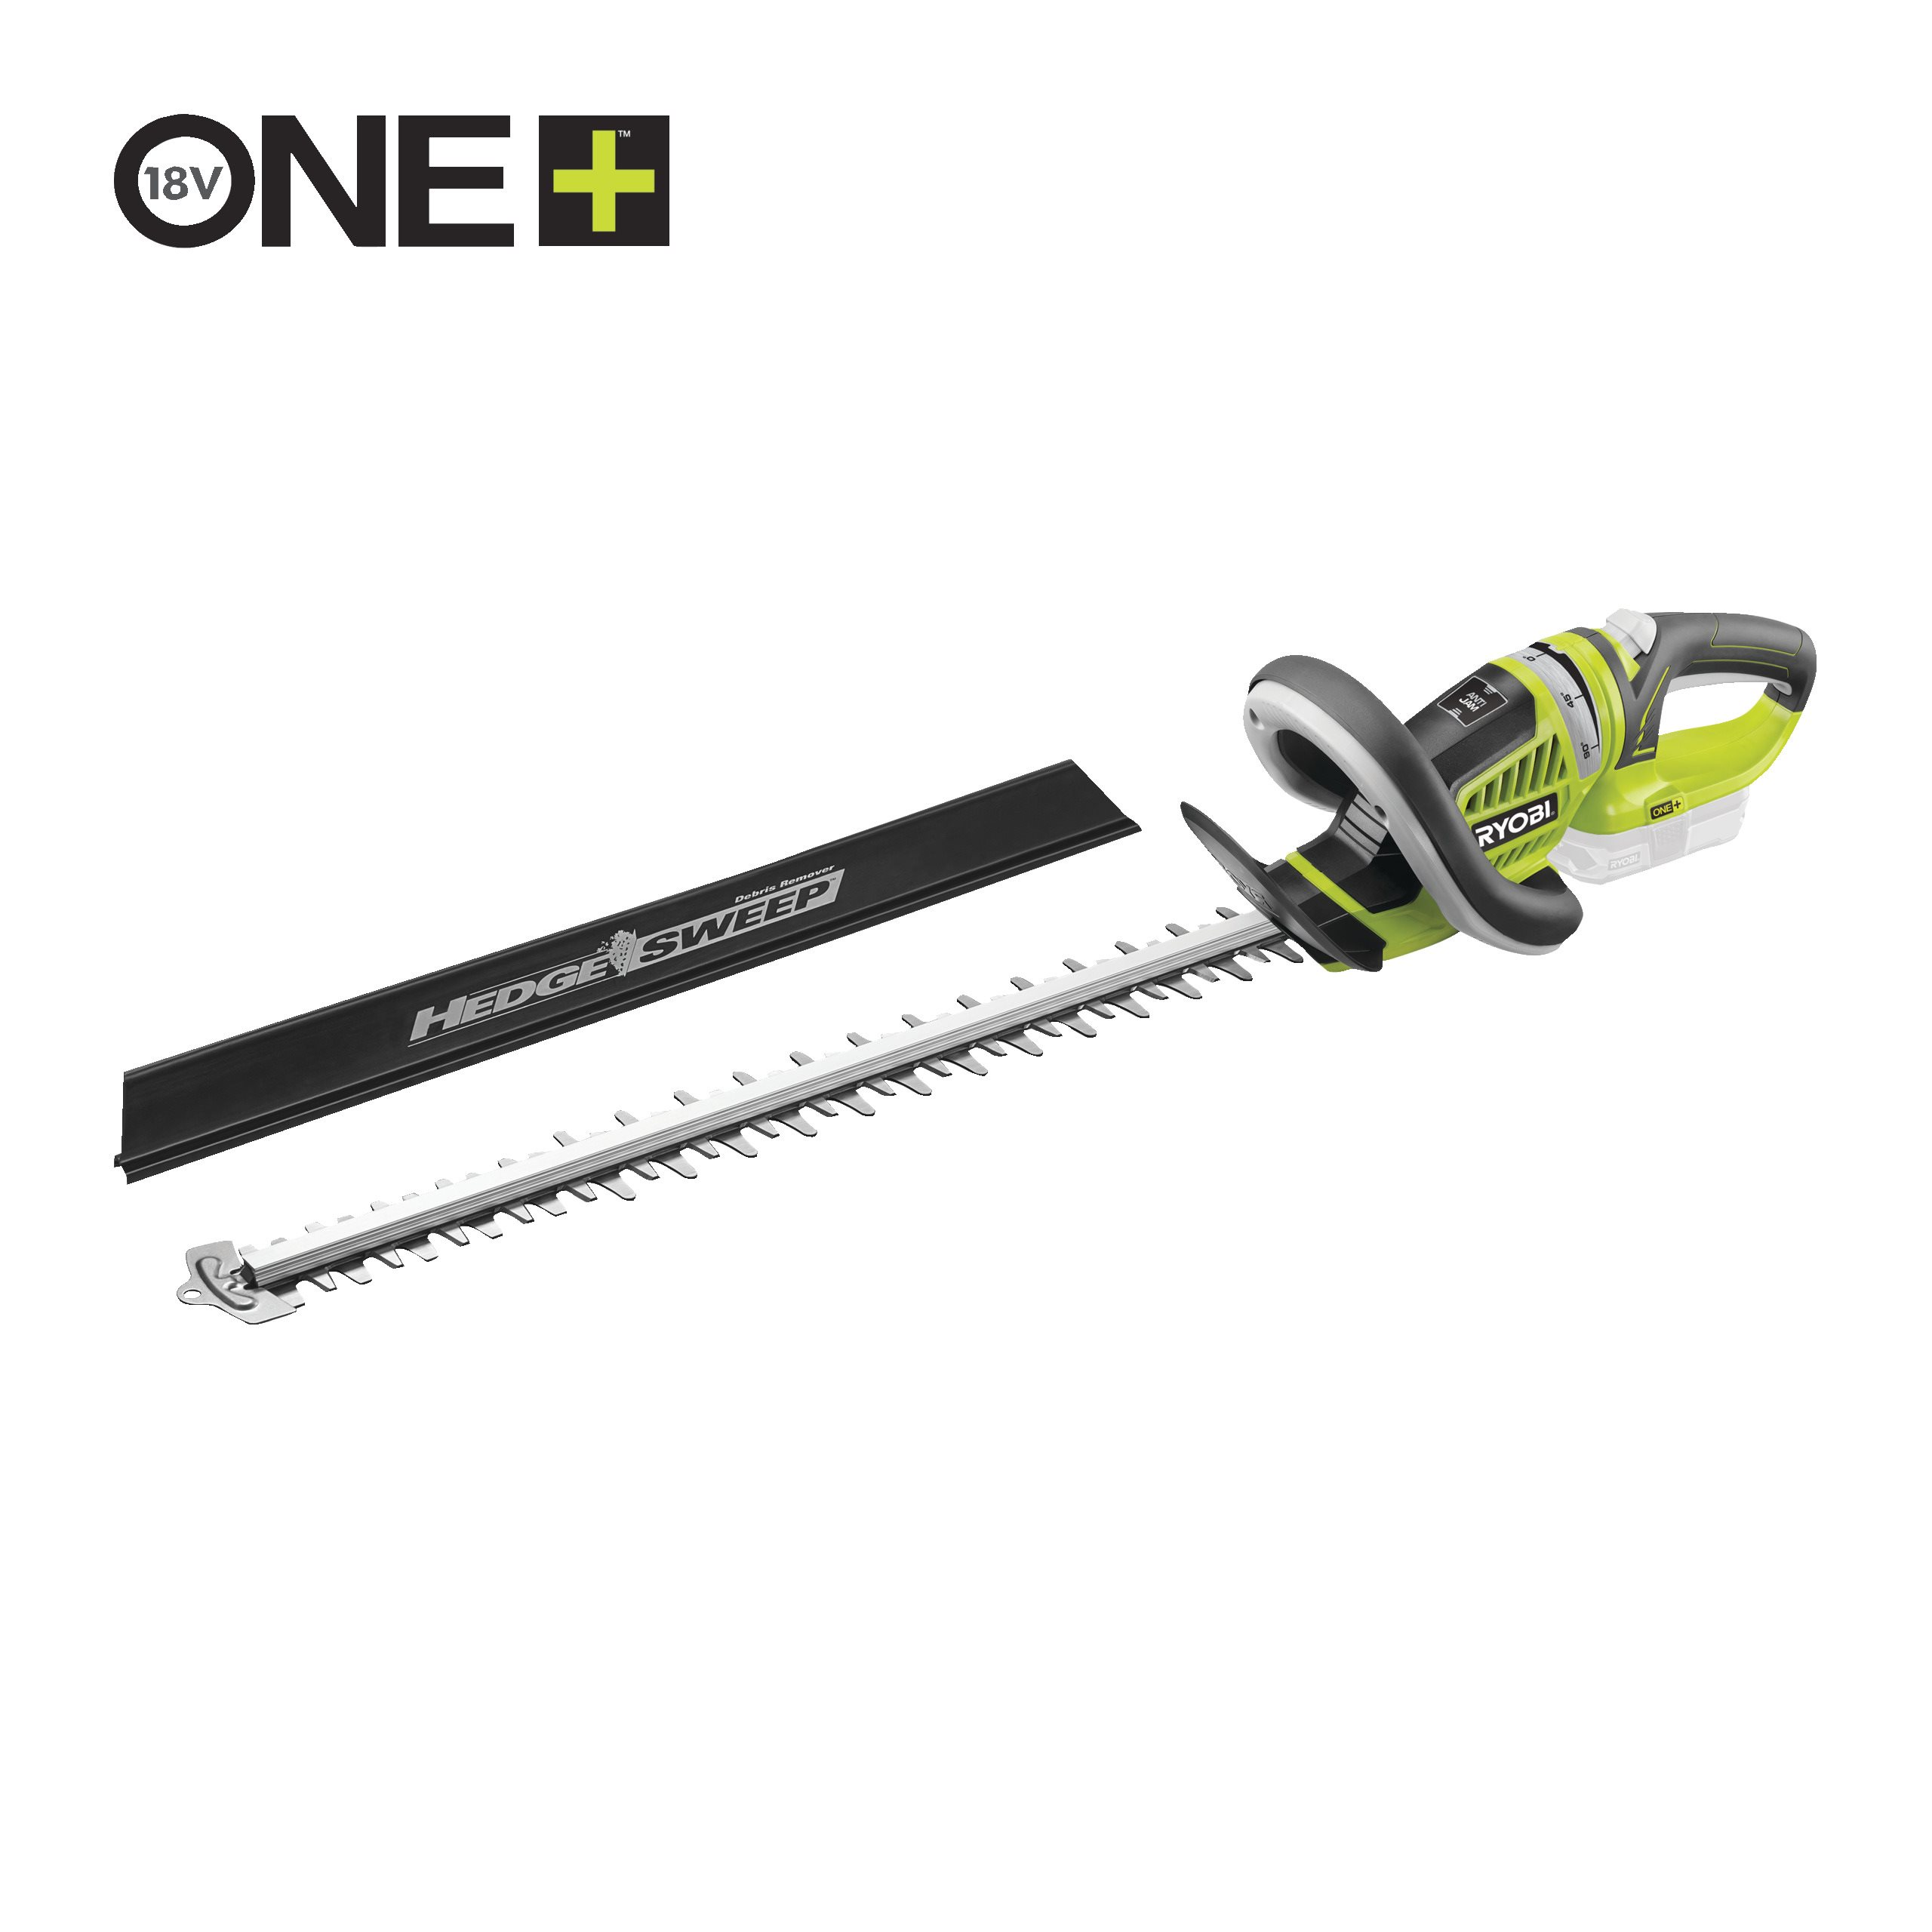 18v Cordless Hedge Trimmer Oht1855r Ryobi We found 1 manuals for free downloads: 18v cordless hedge trimmer oht1855r